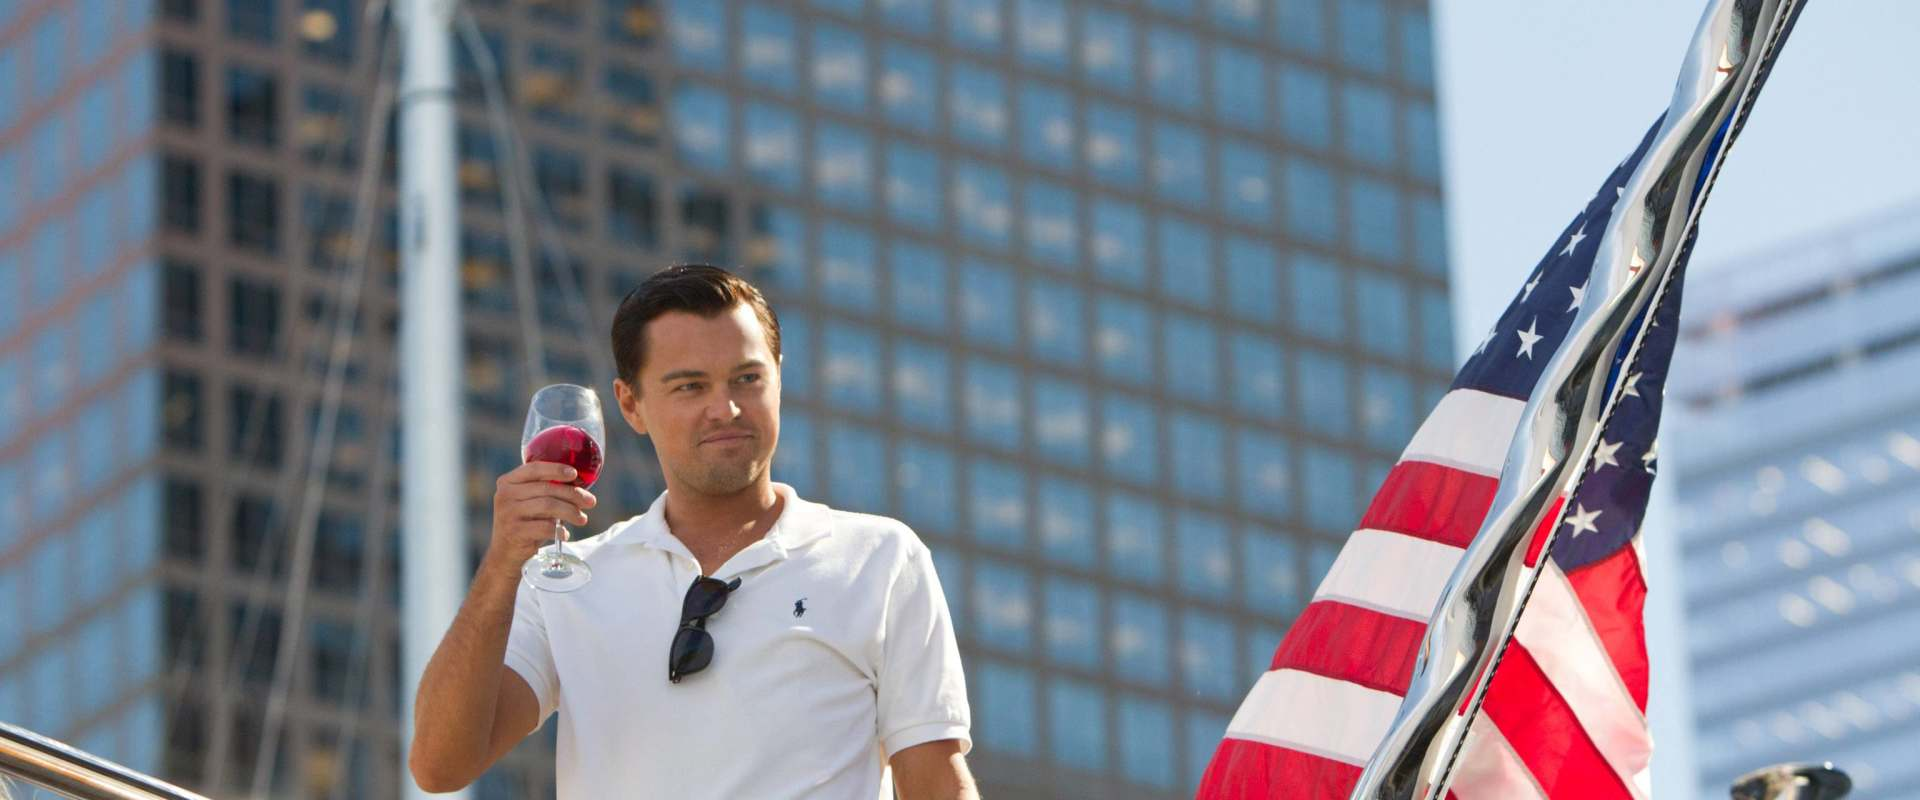 Watch The Wolf of Wall Street on Netflix - Starring